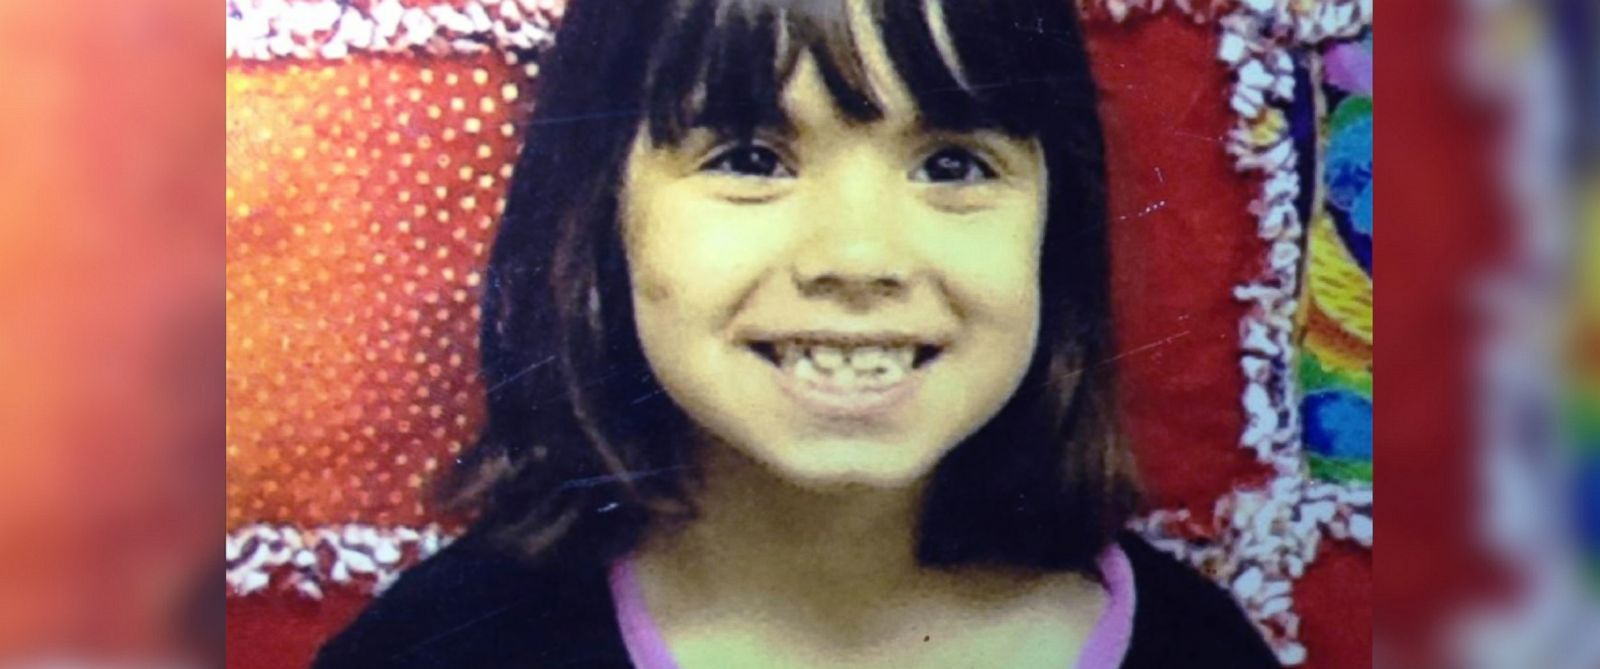 PHOTO: An undated photo provided by the Kitsap County Sheriffs Office shows Jenise Paulette Wright, 6, who was last seen in her home in east Bremerton, Wash.